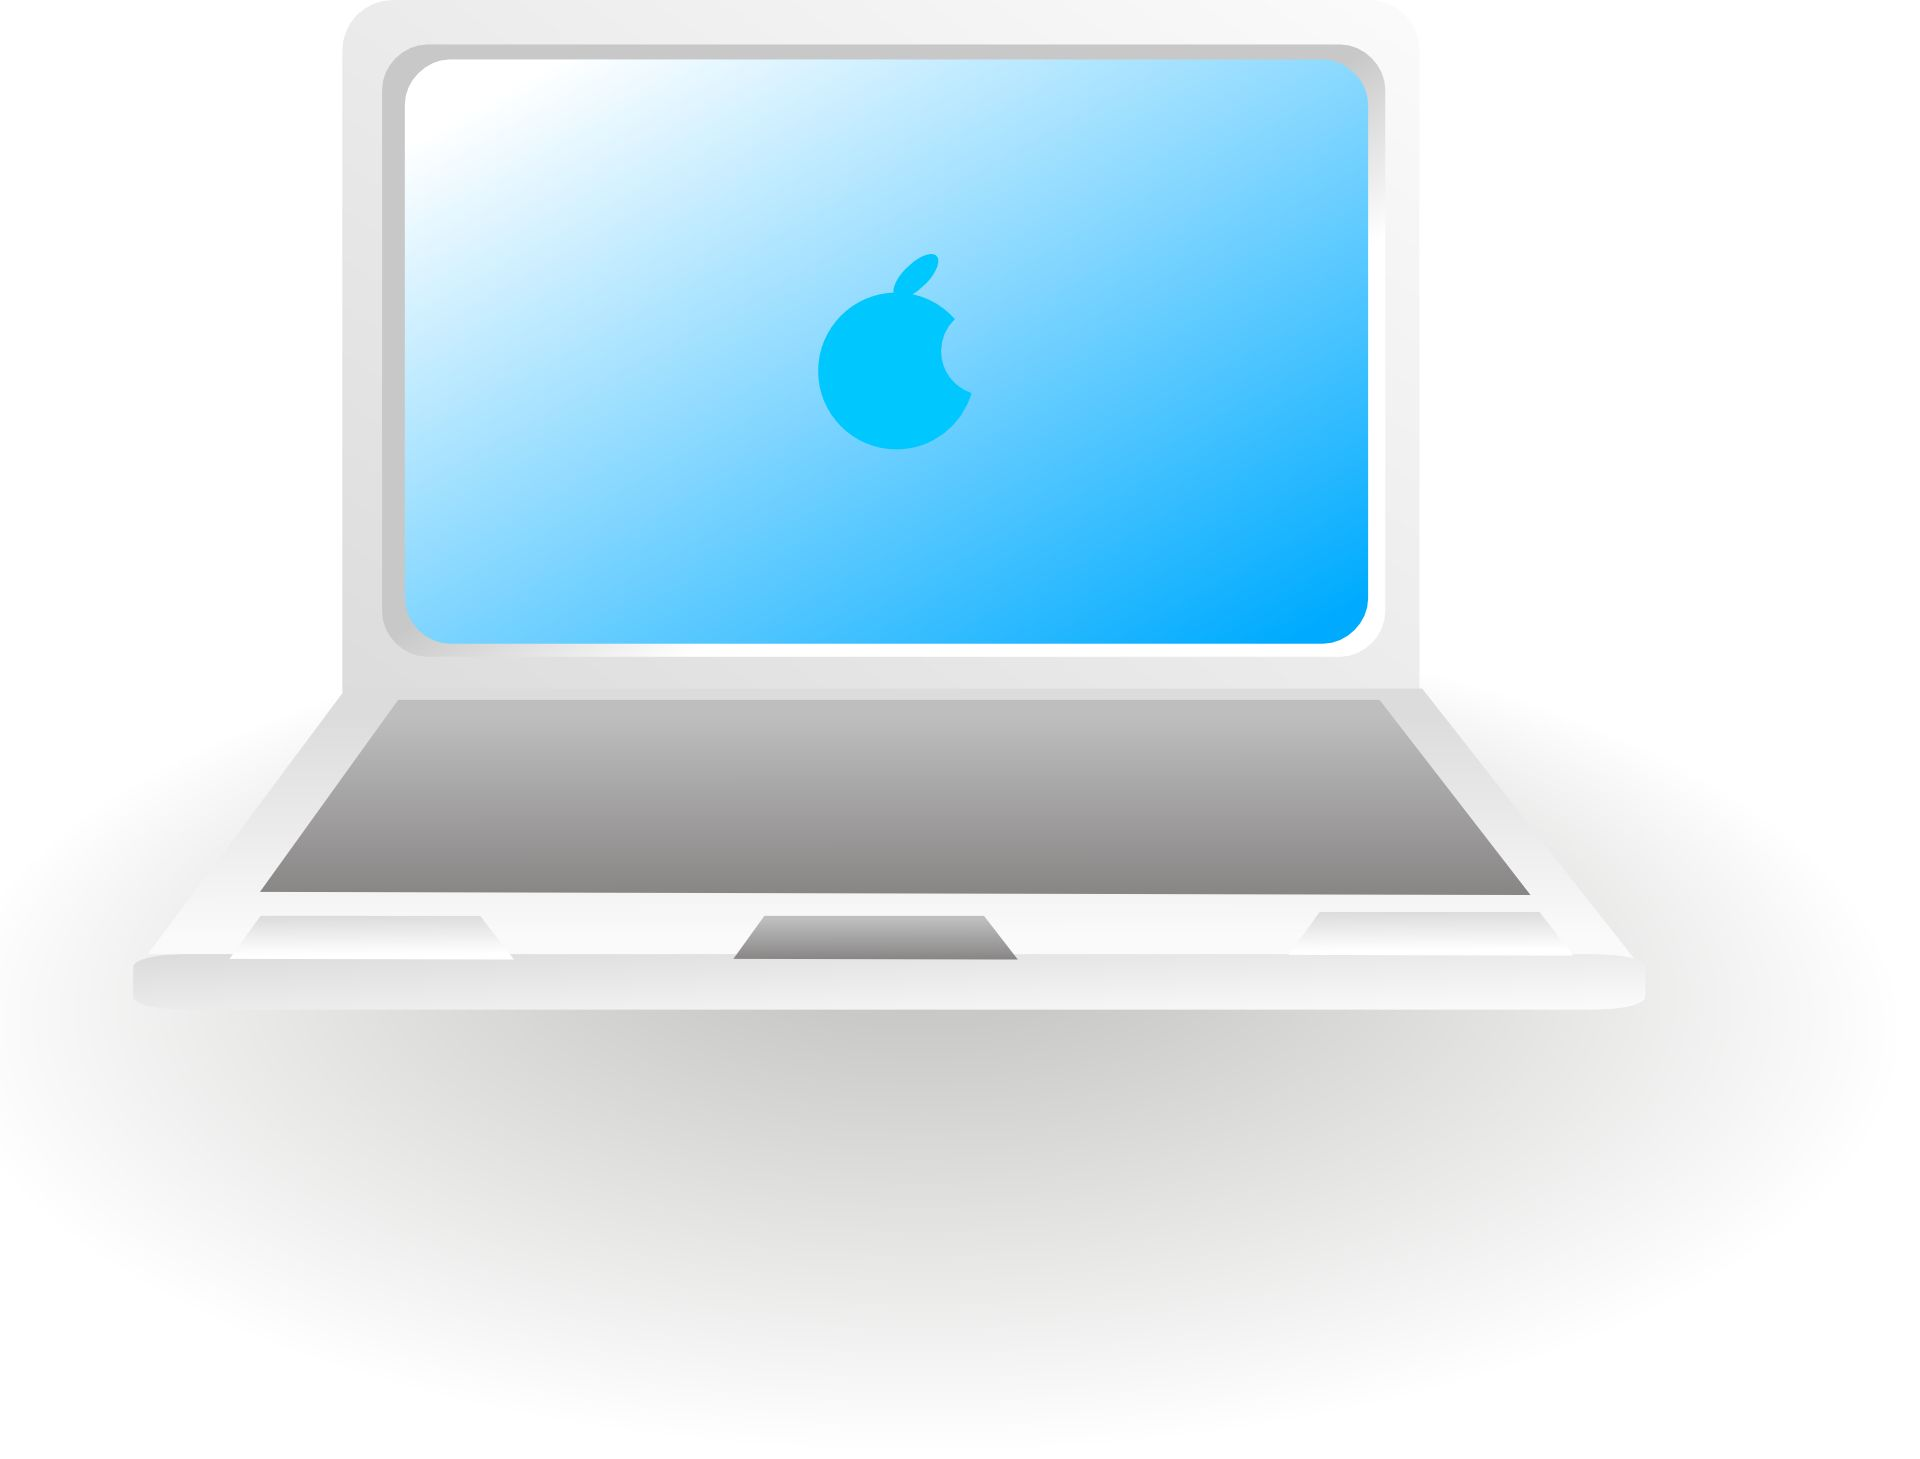 Apple Laptop Computer Clip Art Apple Computer